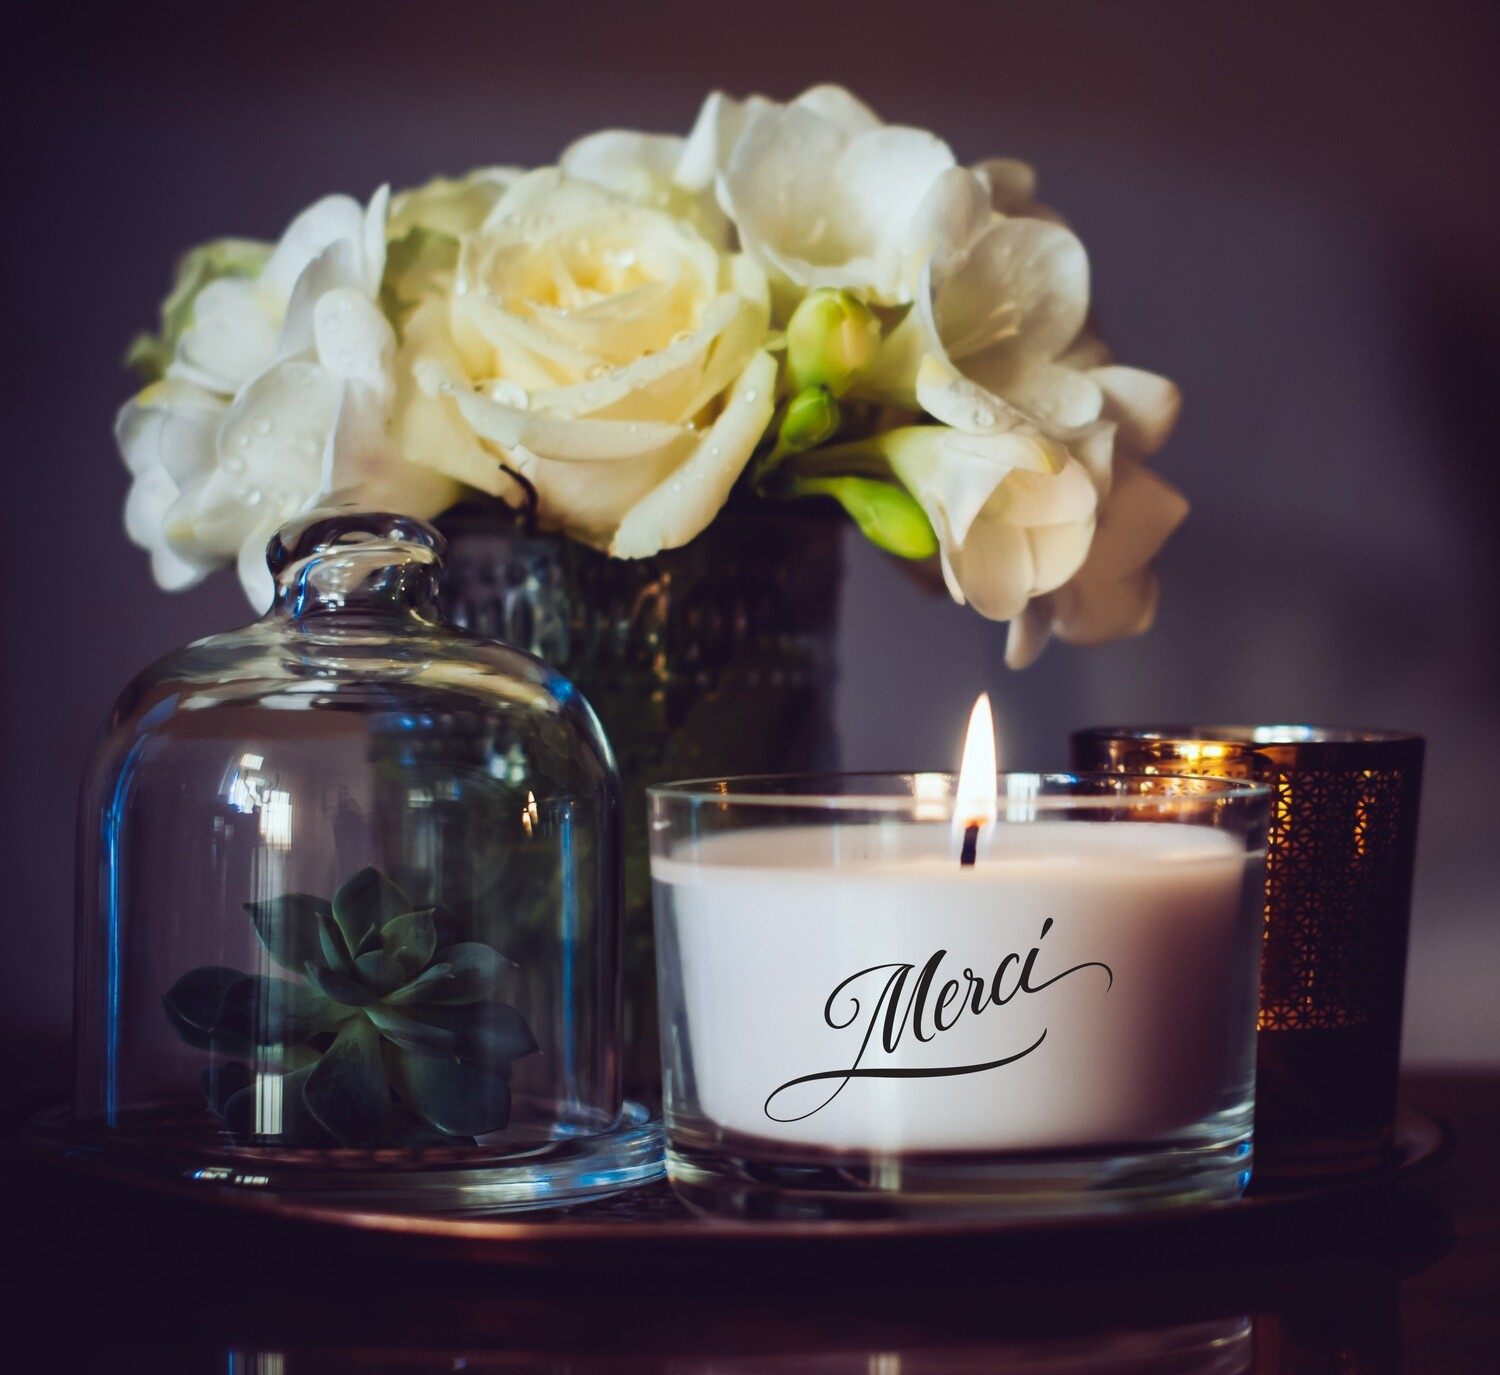 Merci Medium Candle